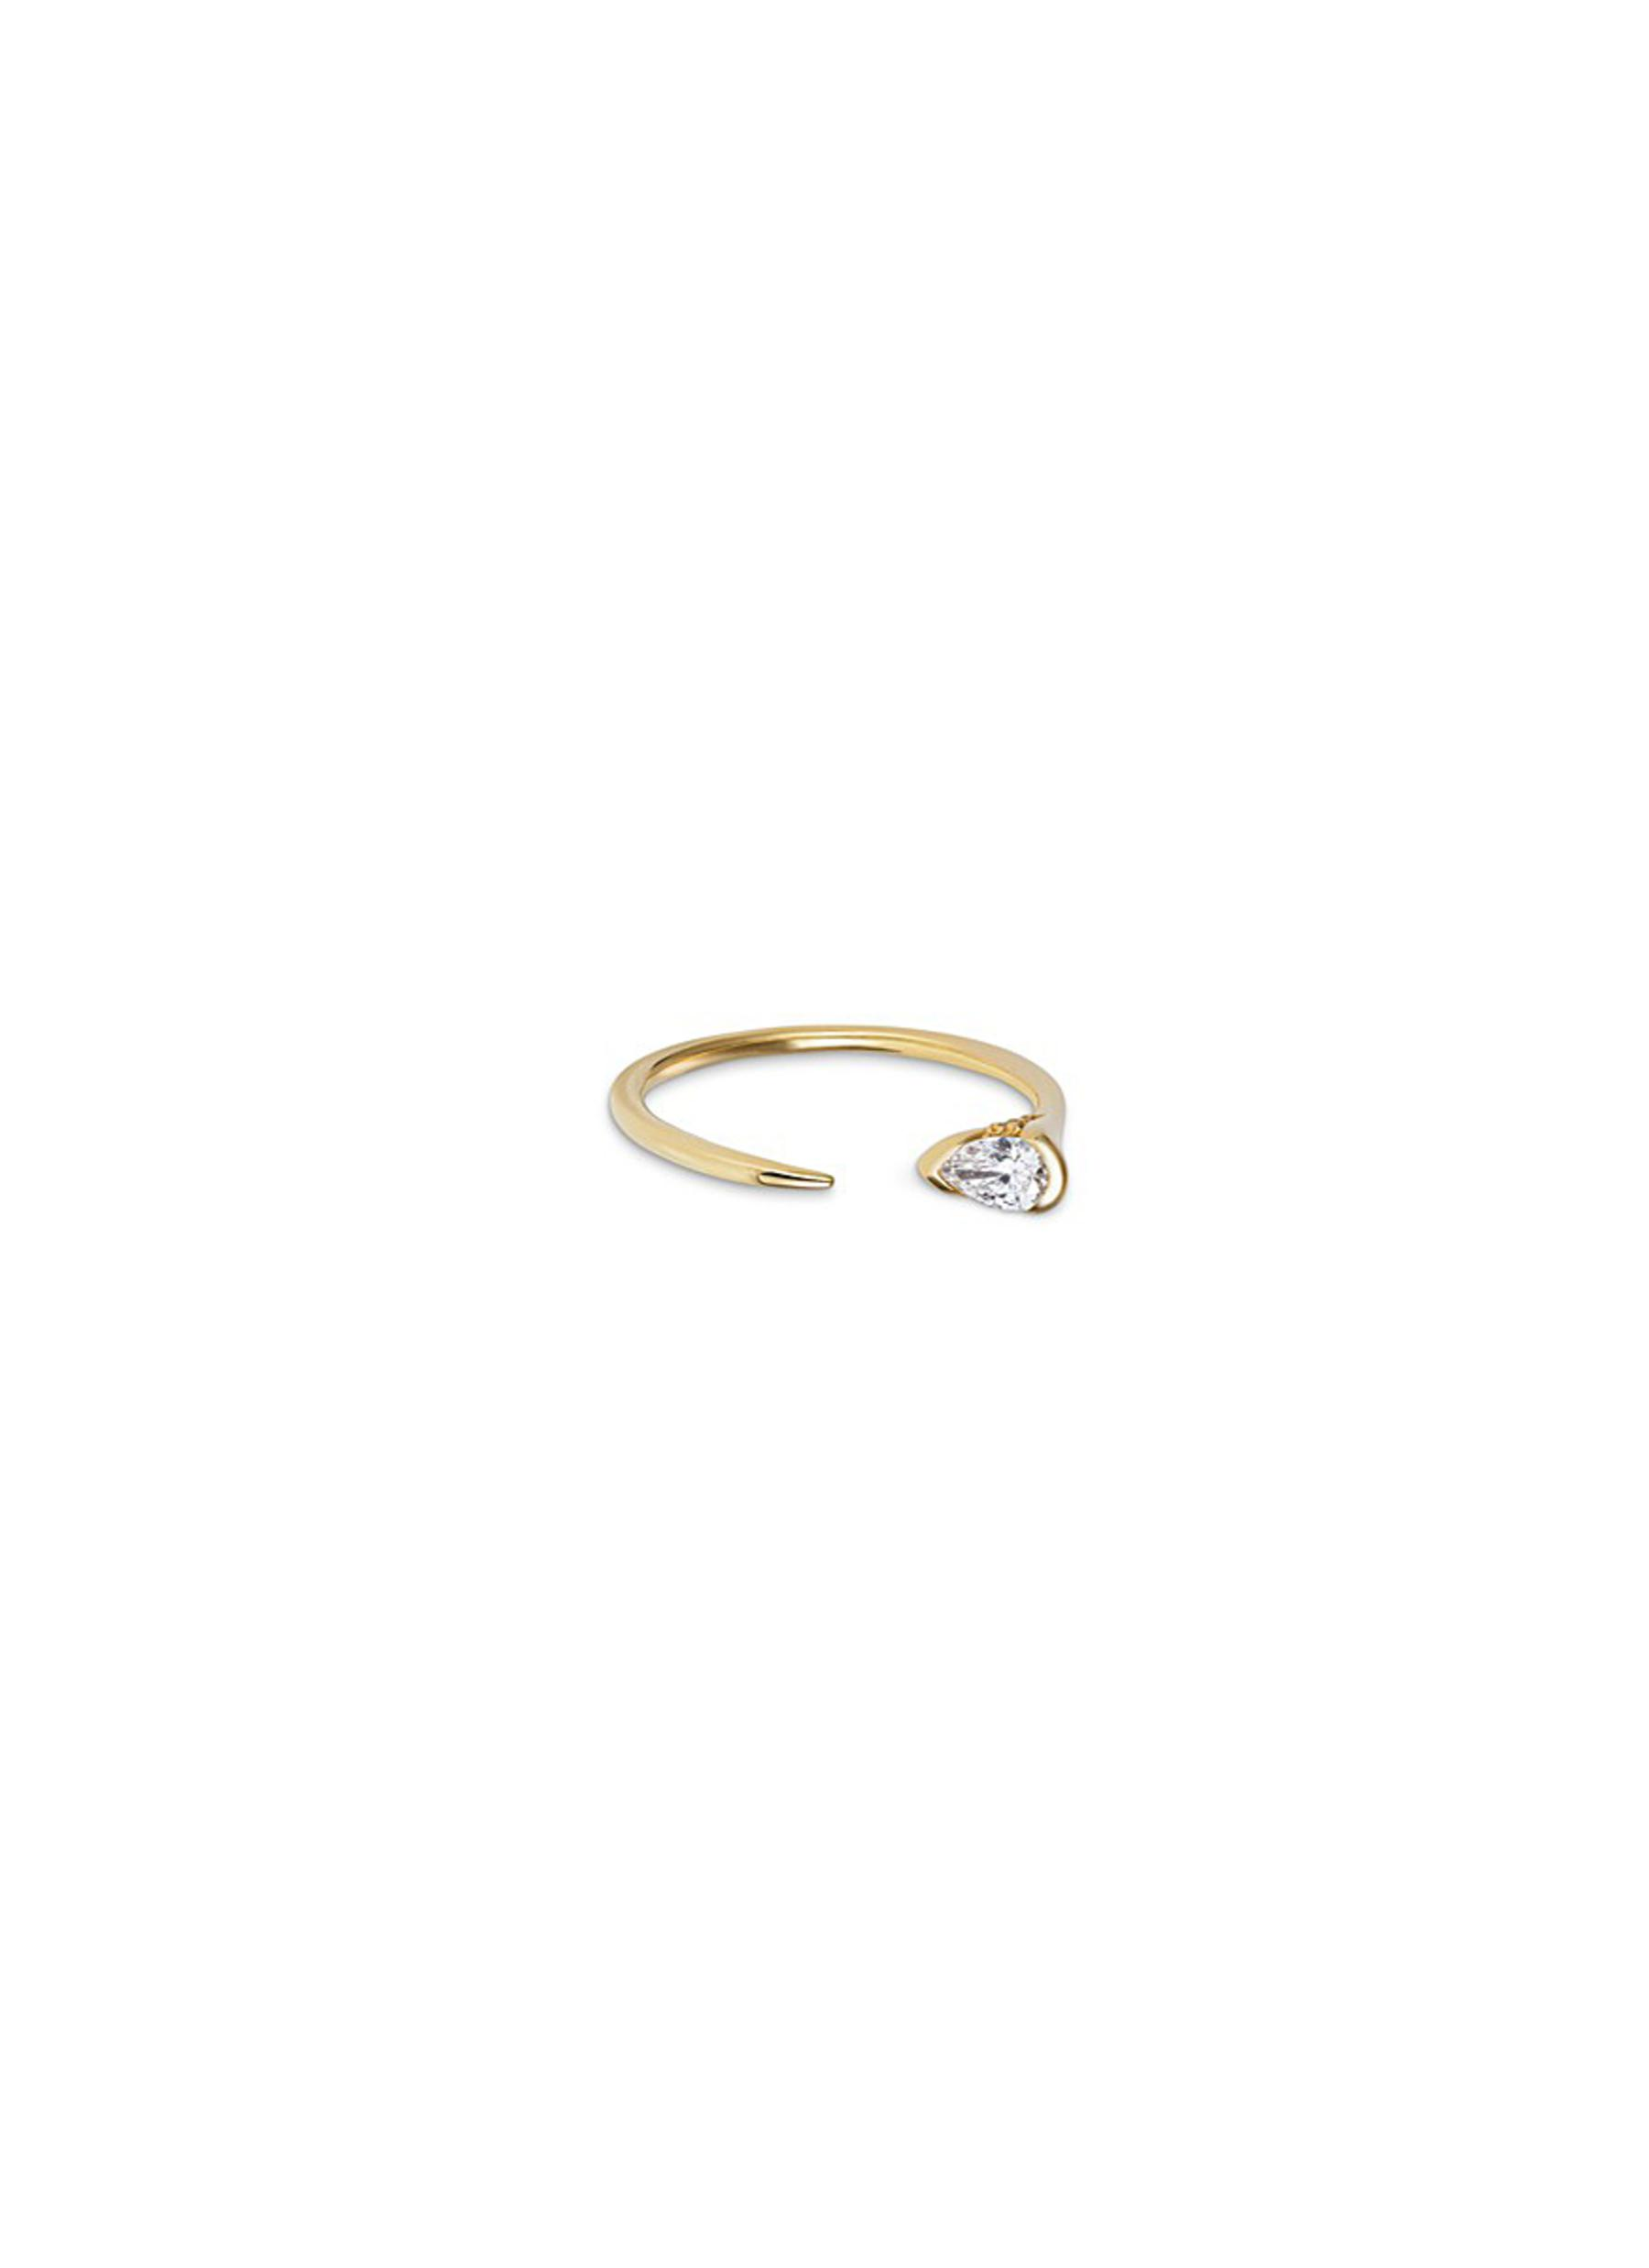 Sprout diamond 18k gold ring by Fernando Jorge